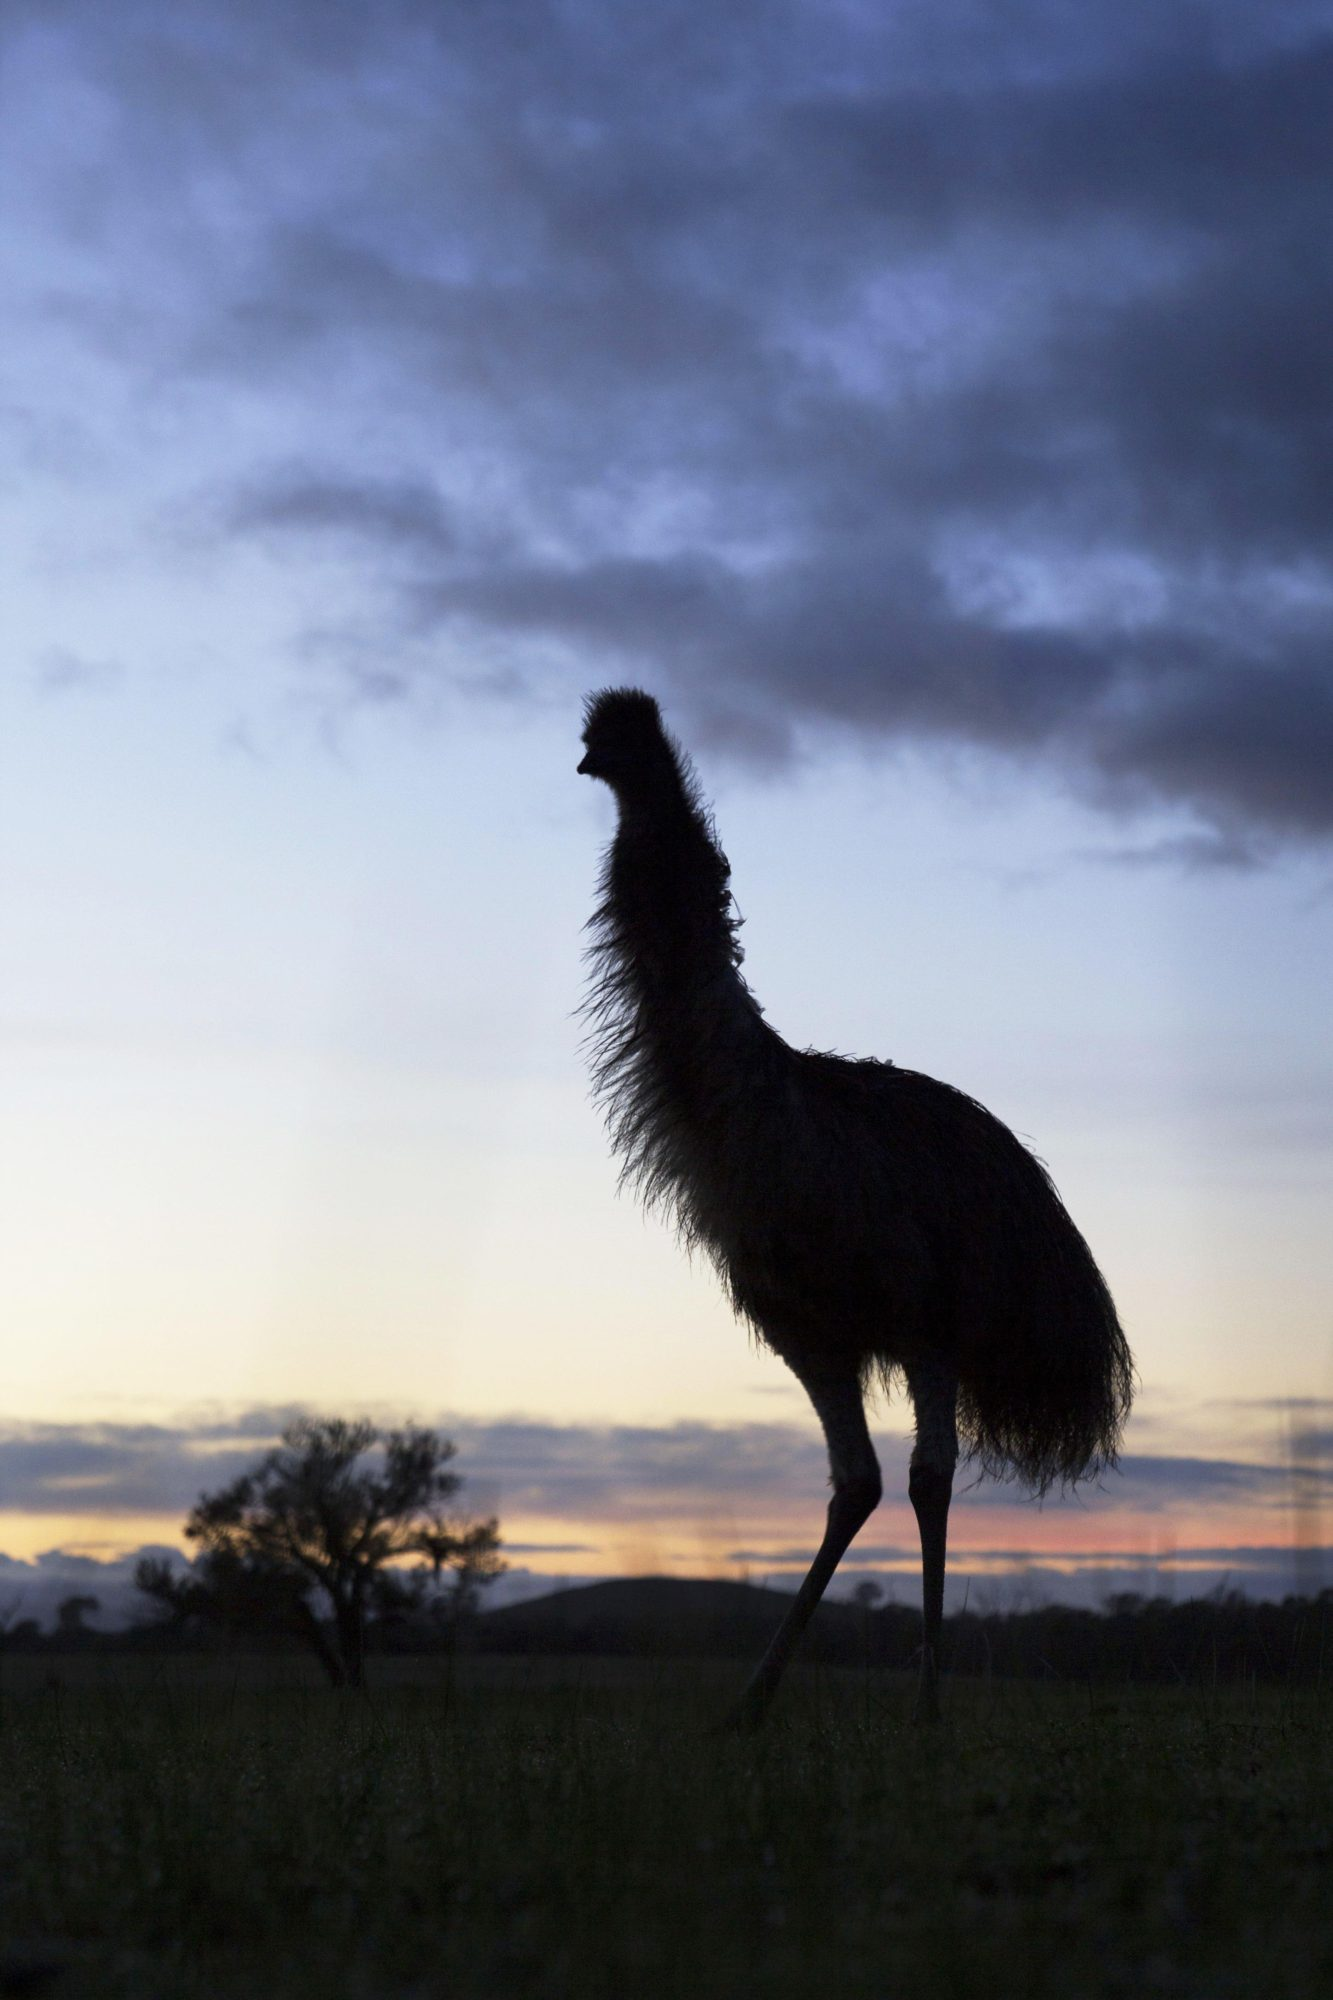 Photo Critique of Emu at Sunrise